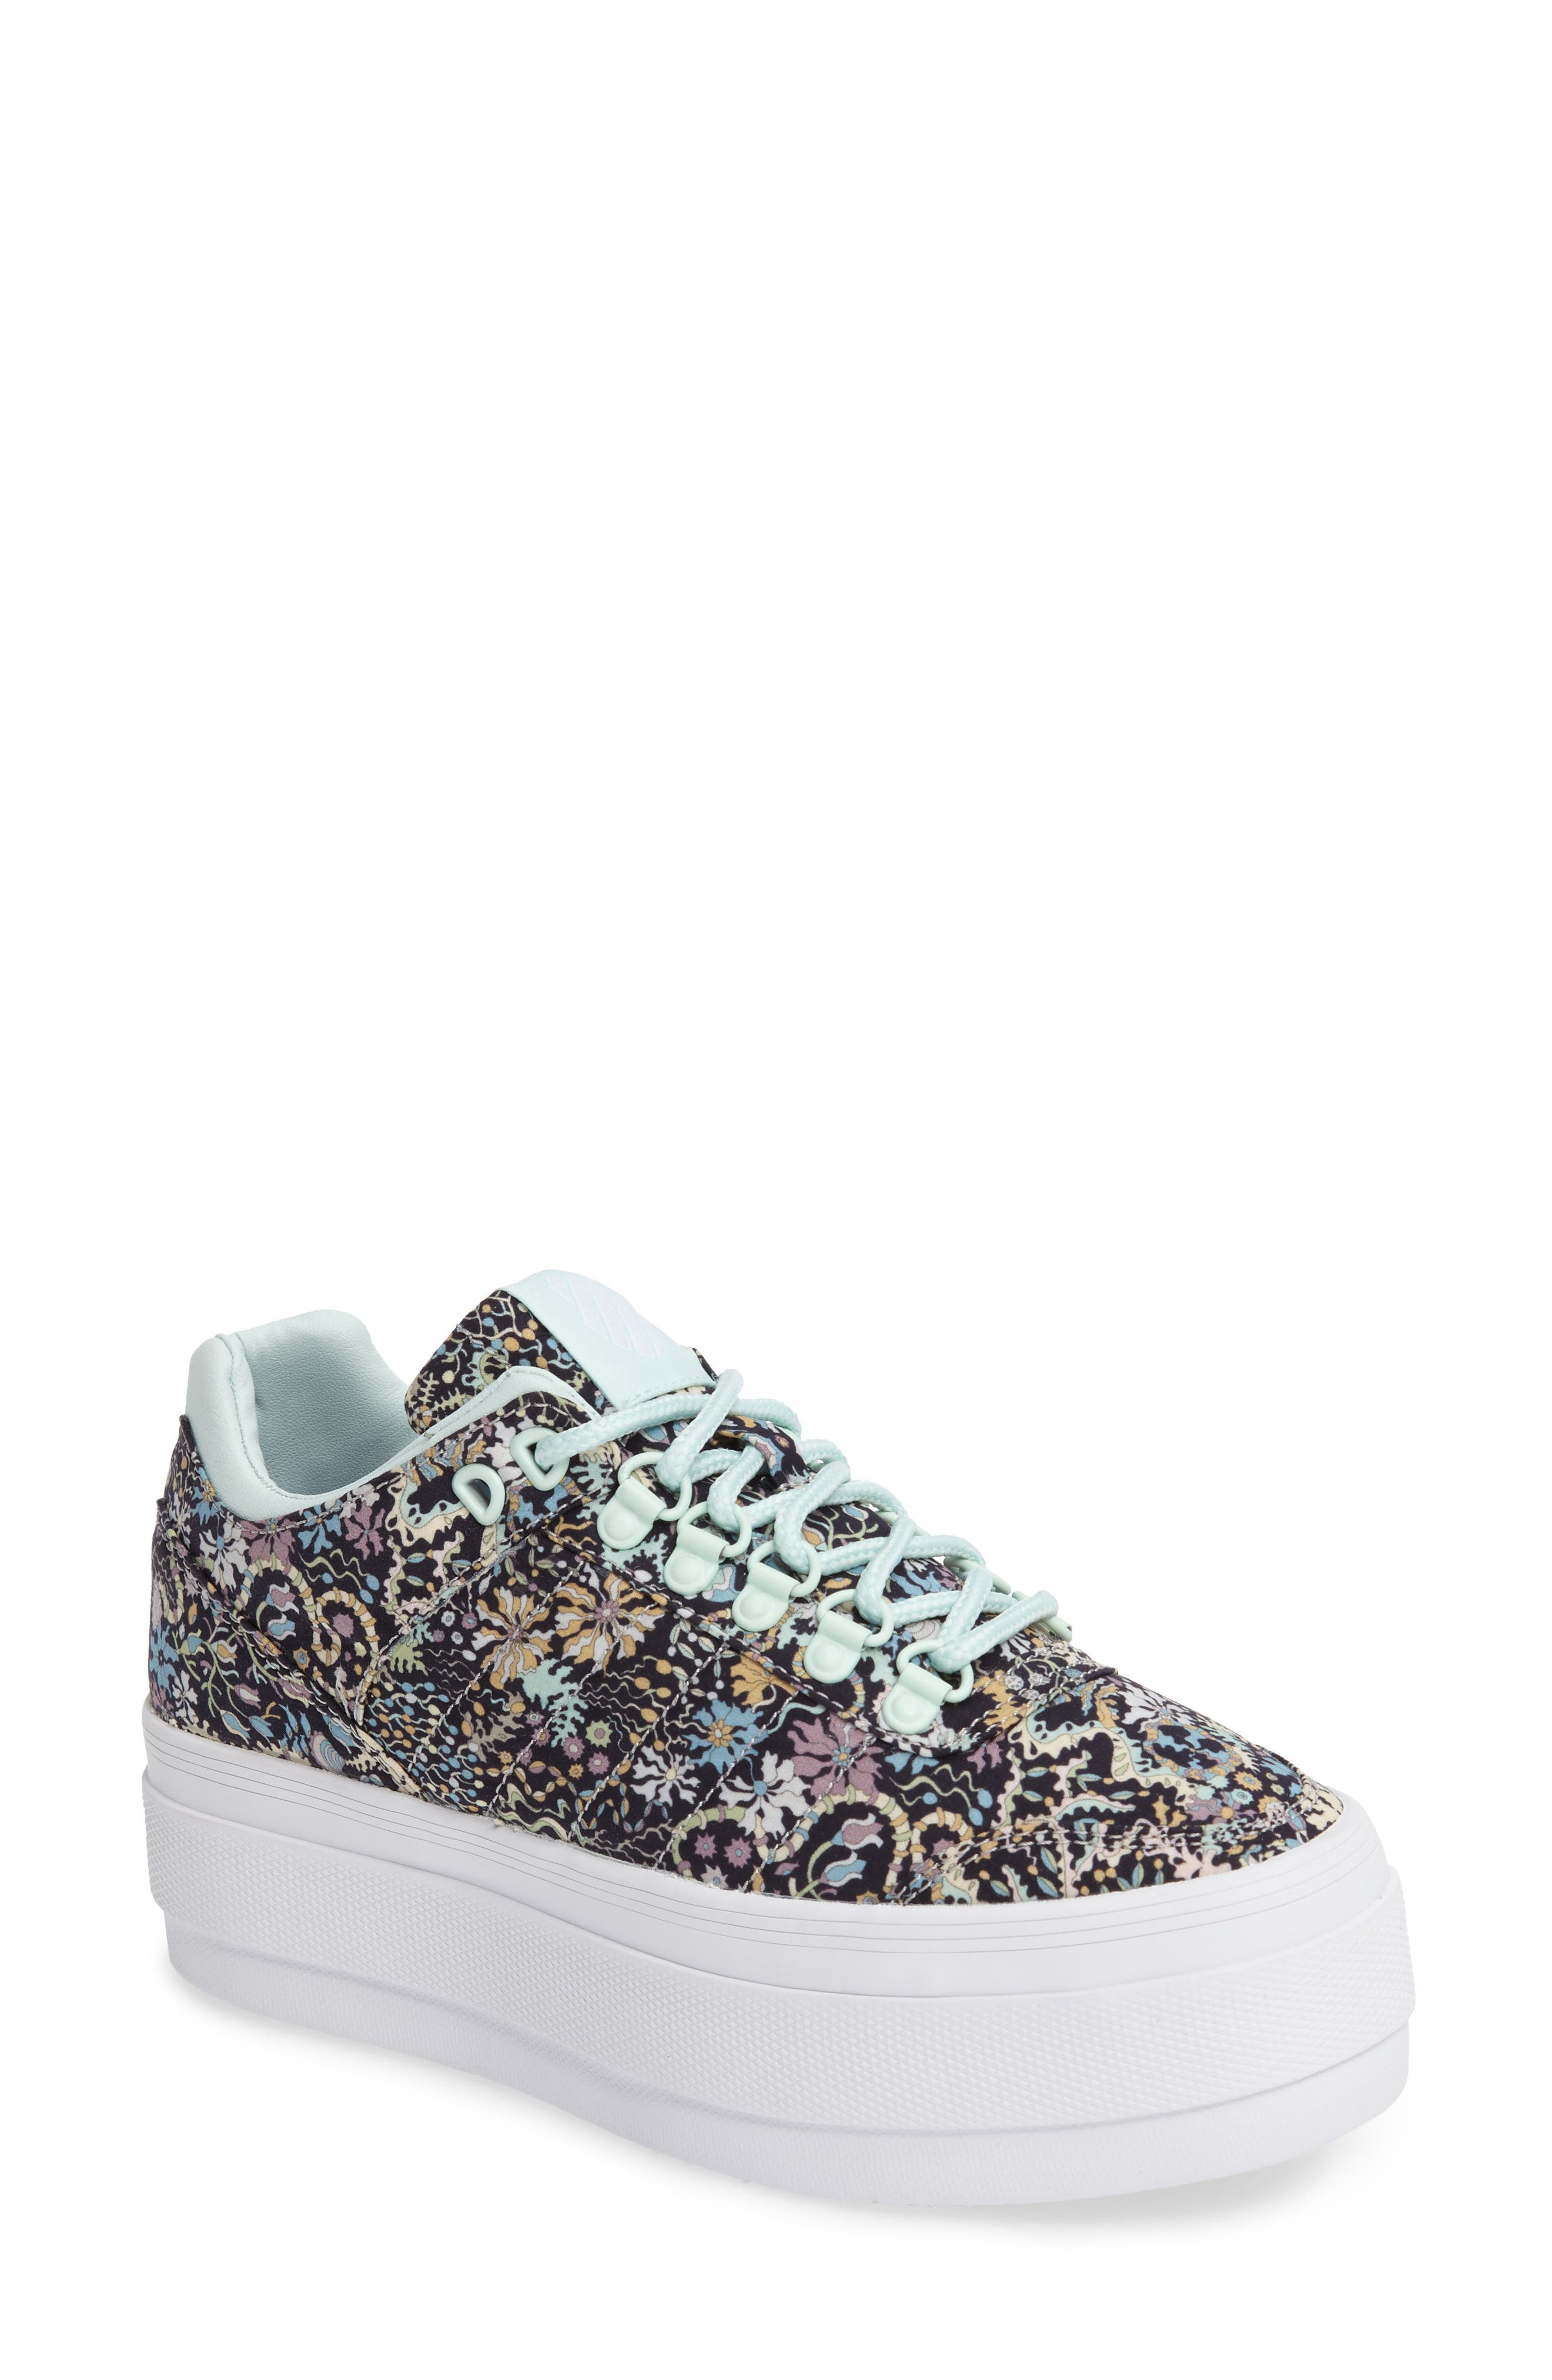 Gstaad Flatform Sneaker,                             Main thumbnail 1, color,                             040